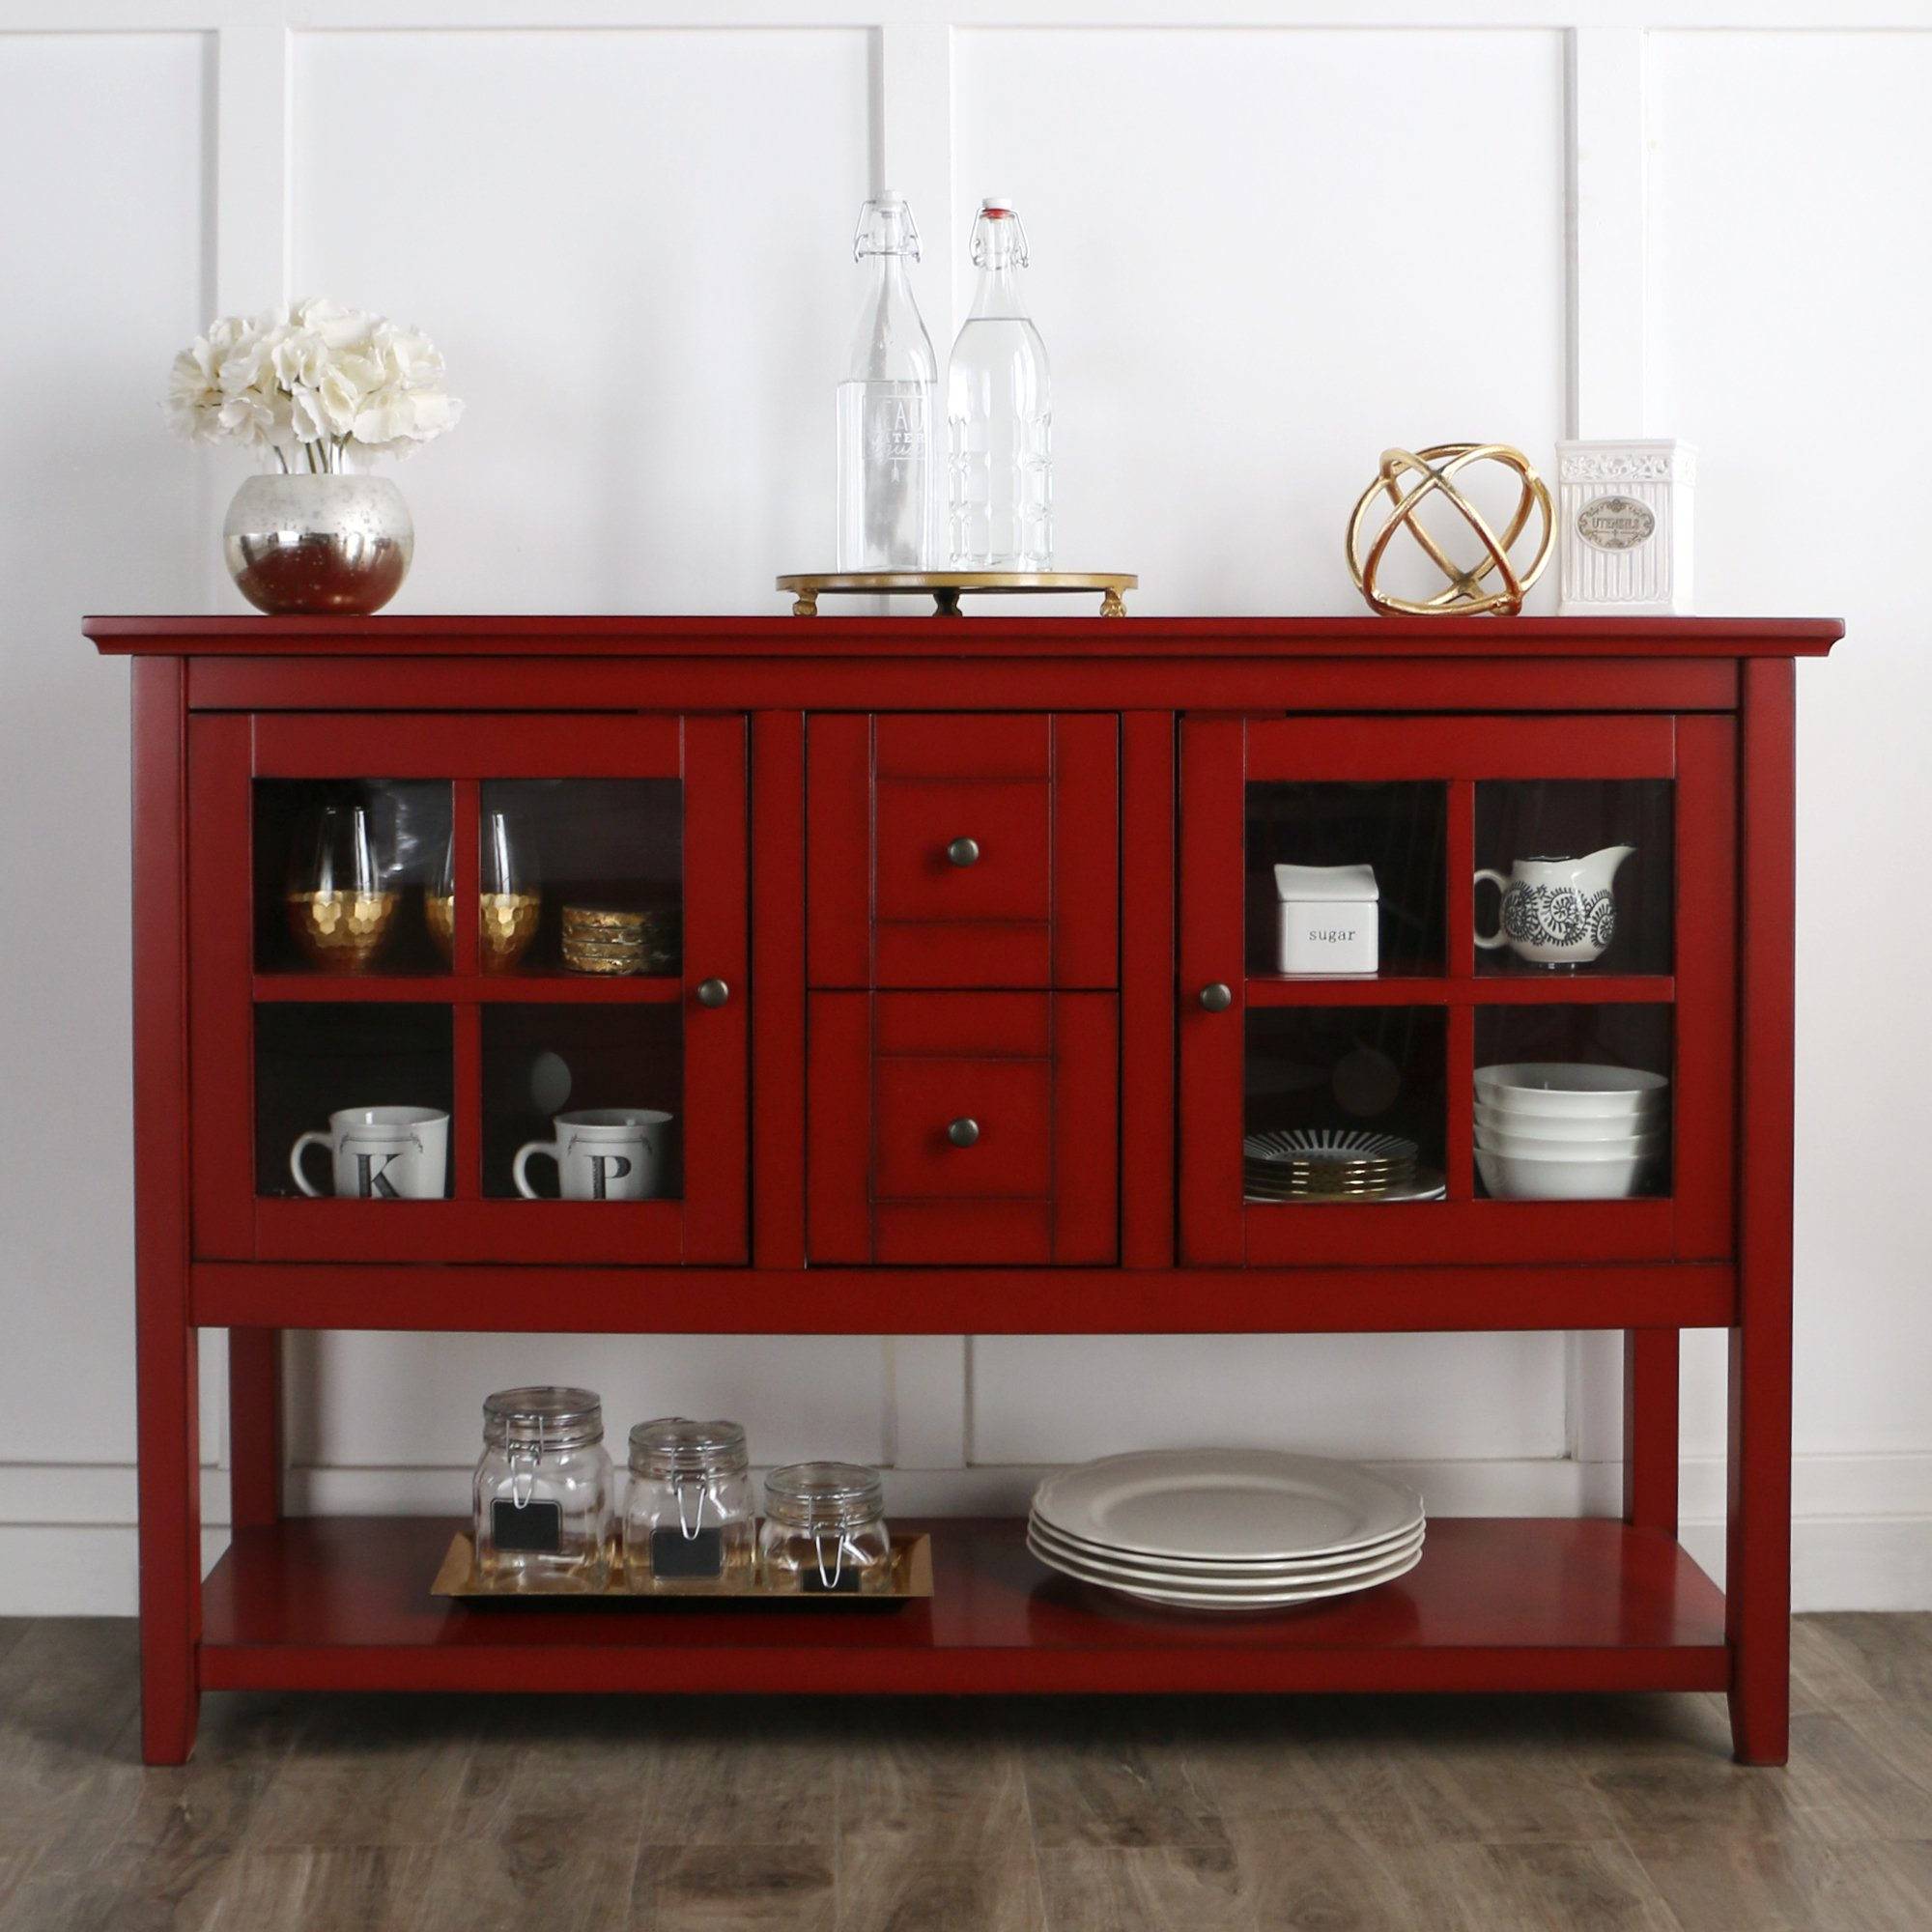 WE Furniture 52'' Console Table Wood TV Stand Console, Red